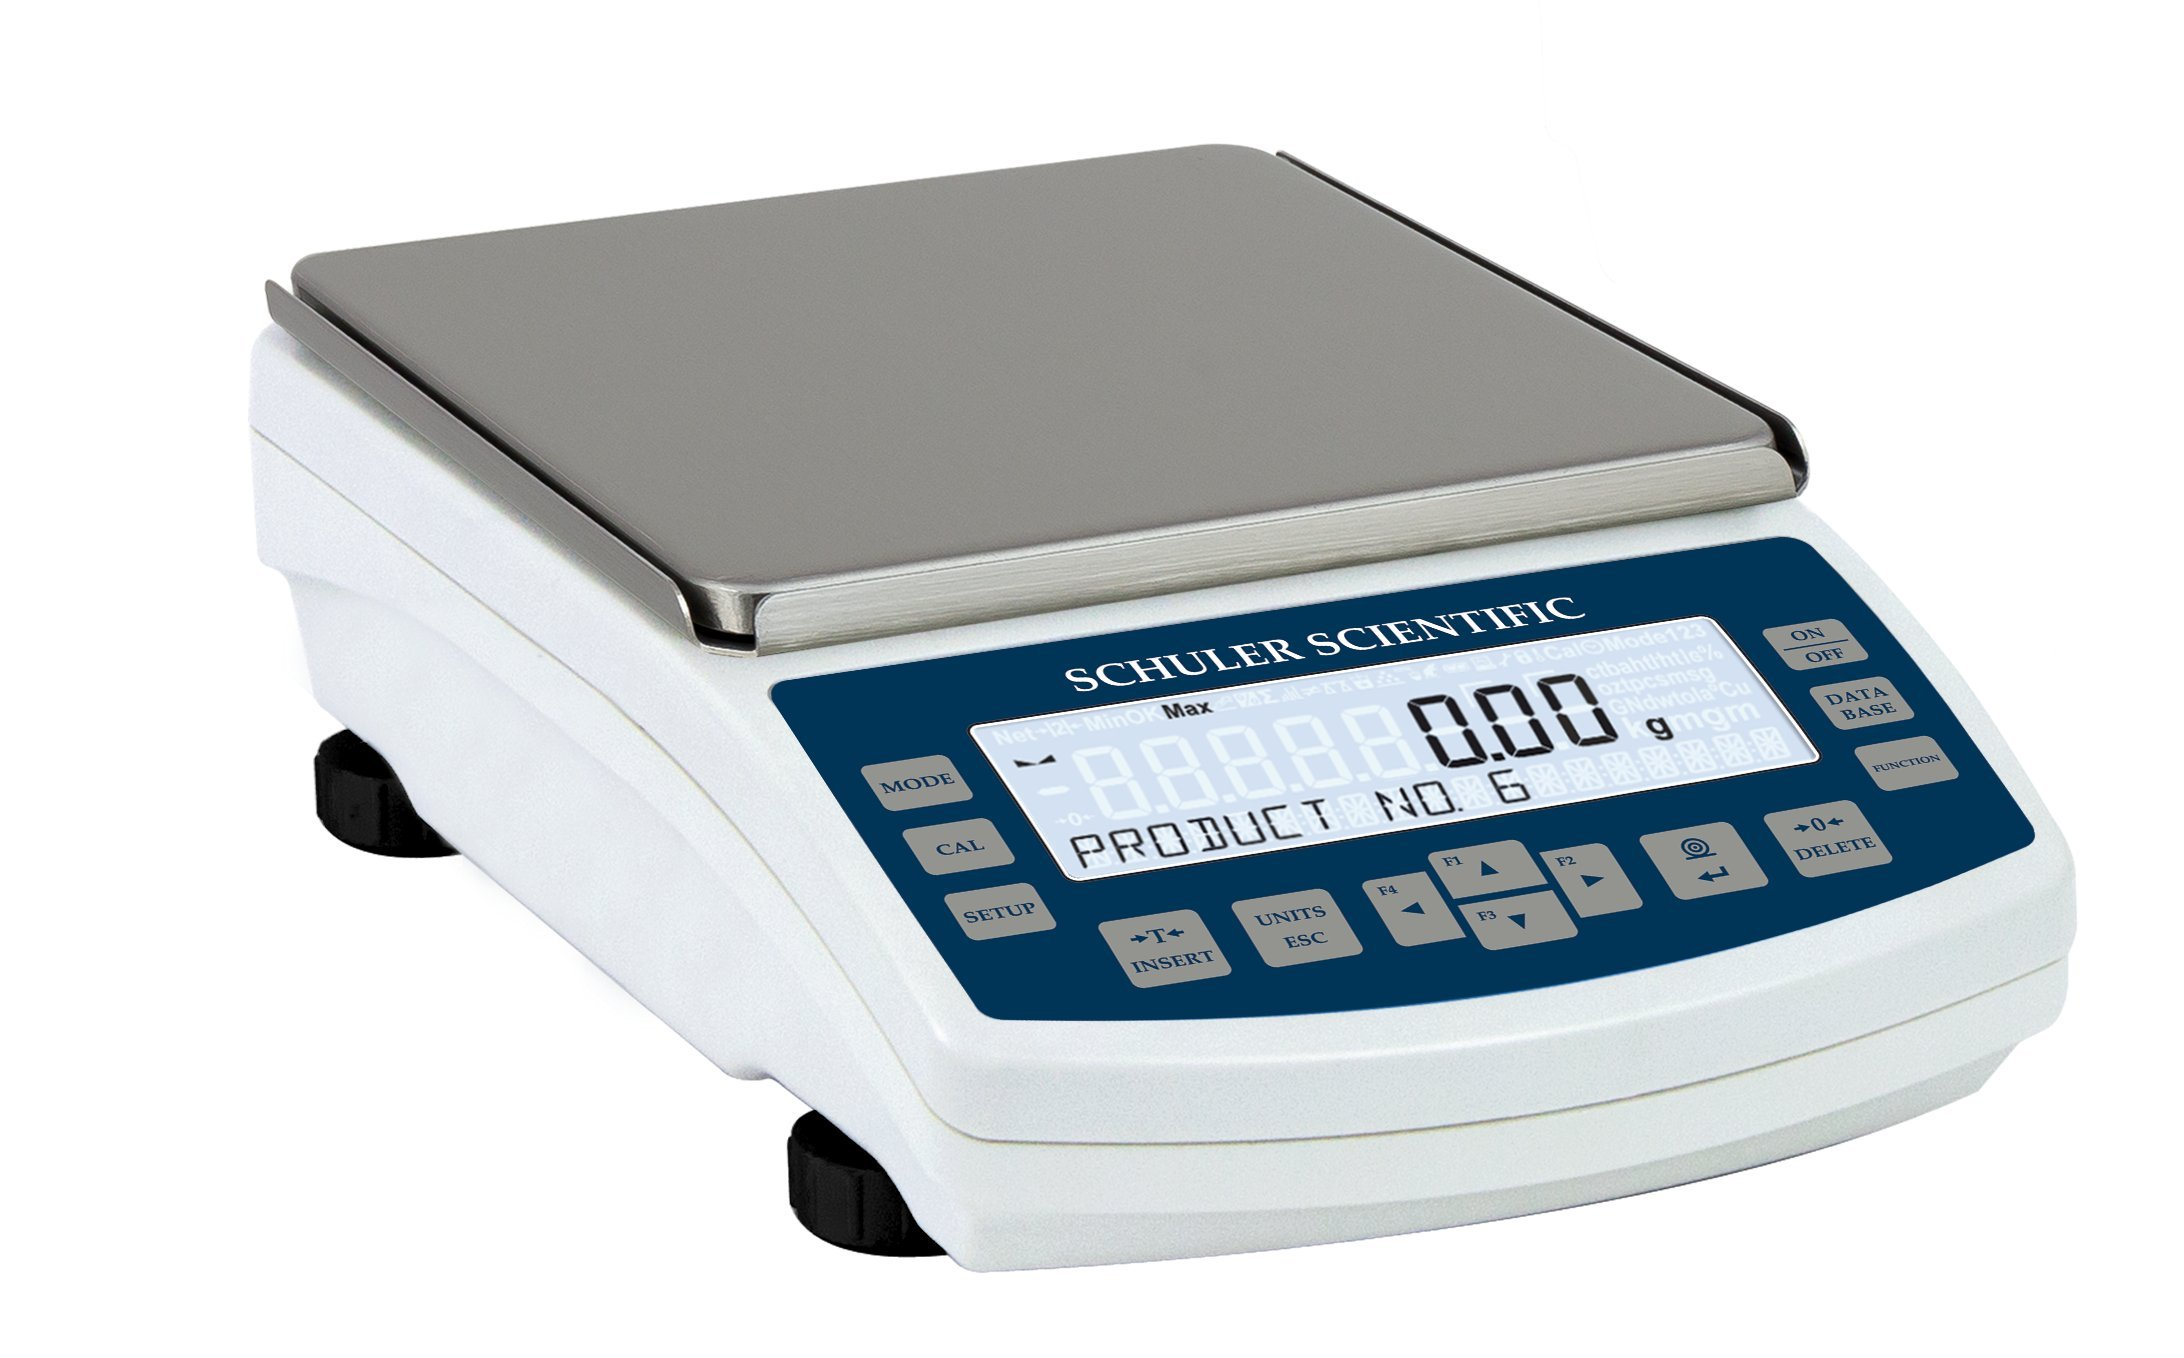 Schuler Scientific SLB-4002 B Series Top Loading Balance with 4000g Capacity and 0.01g Readability